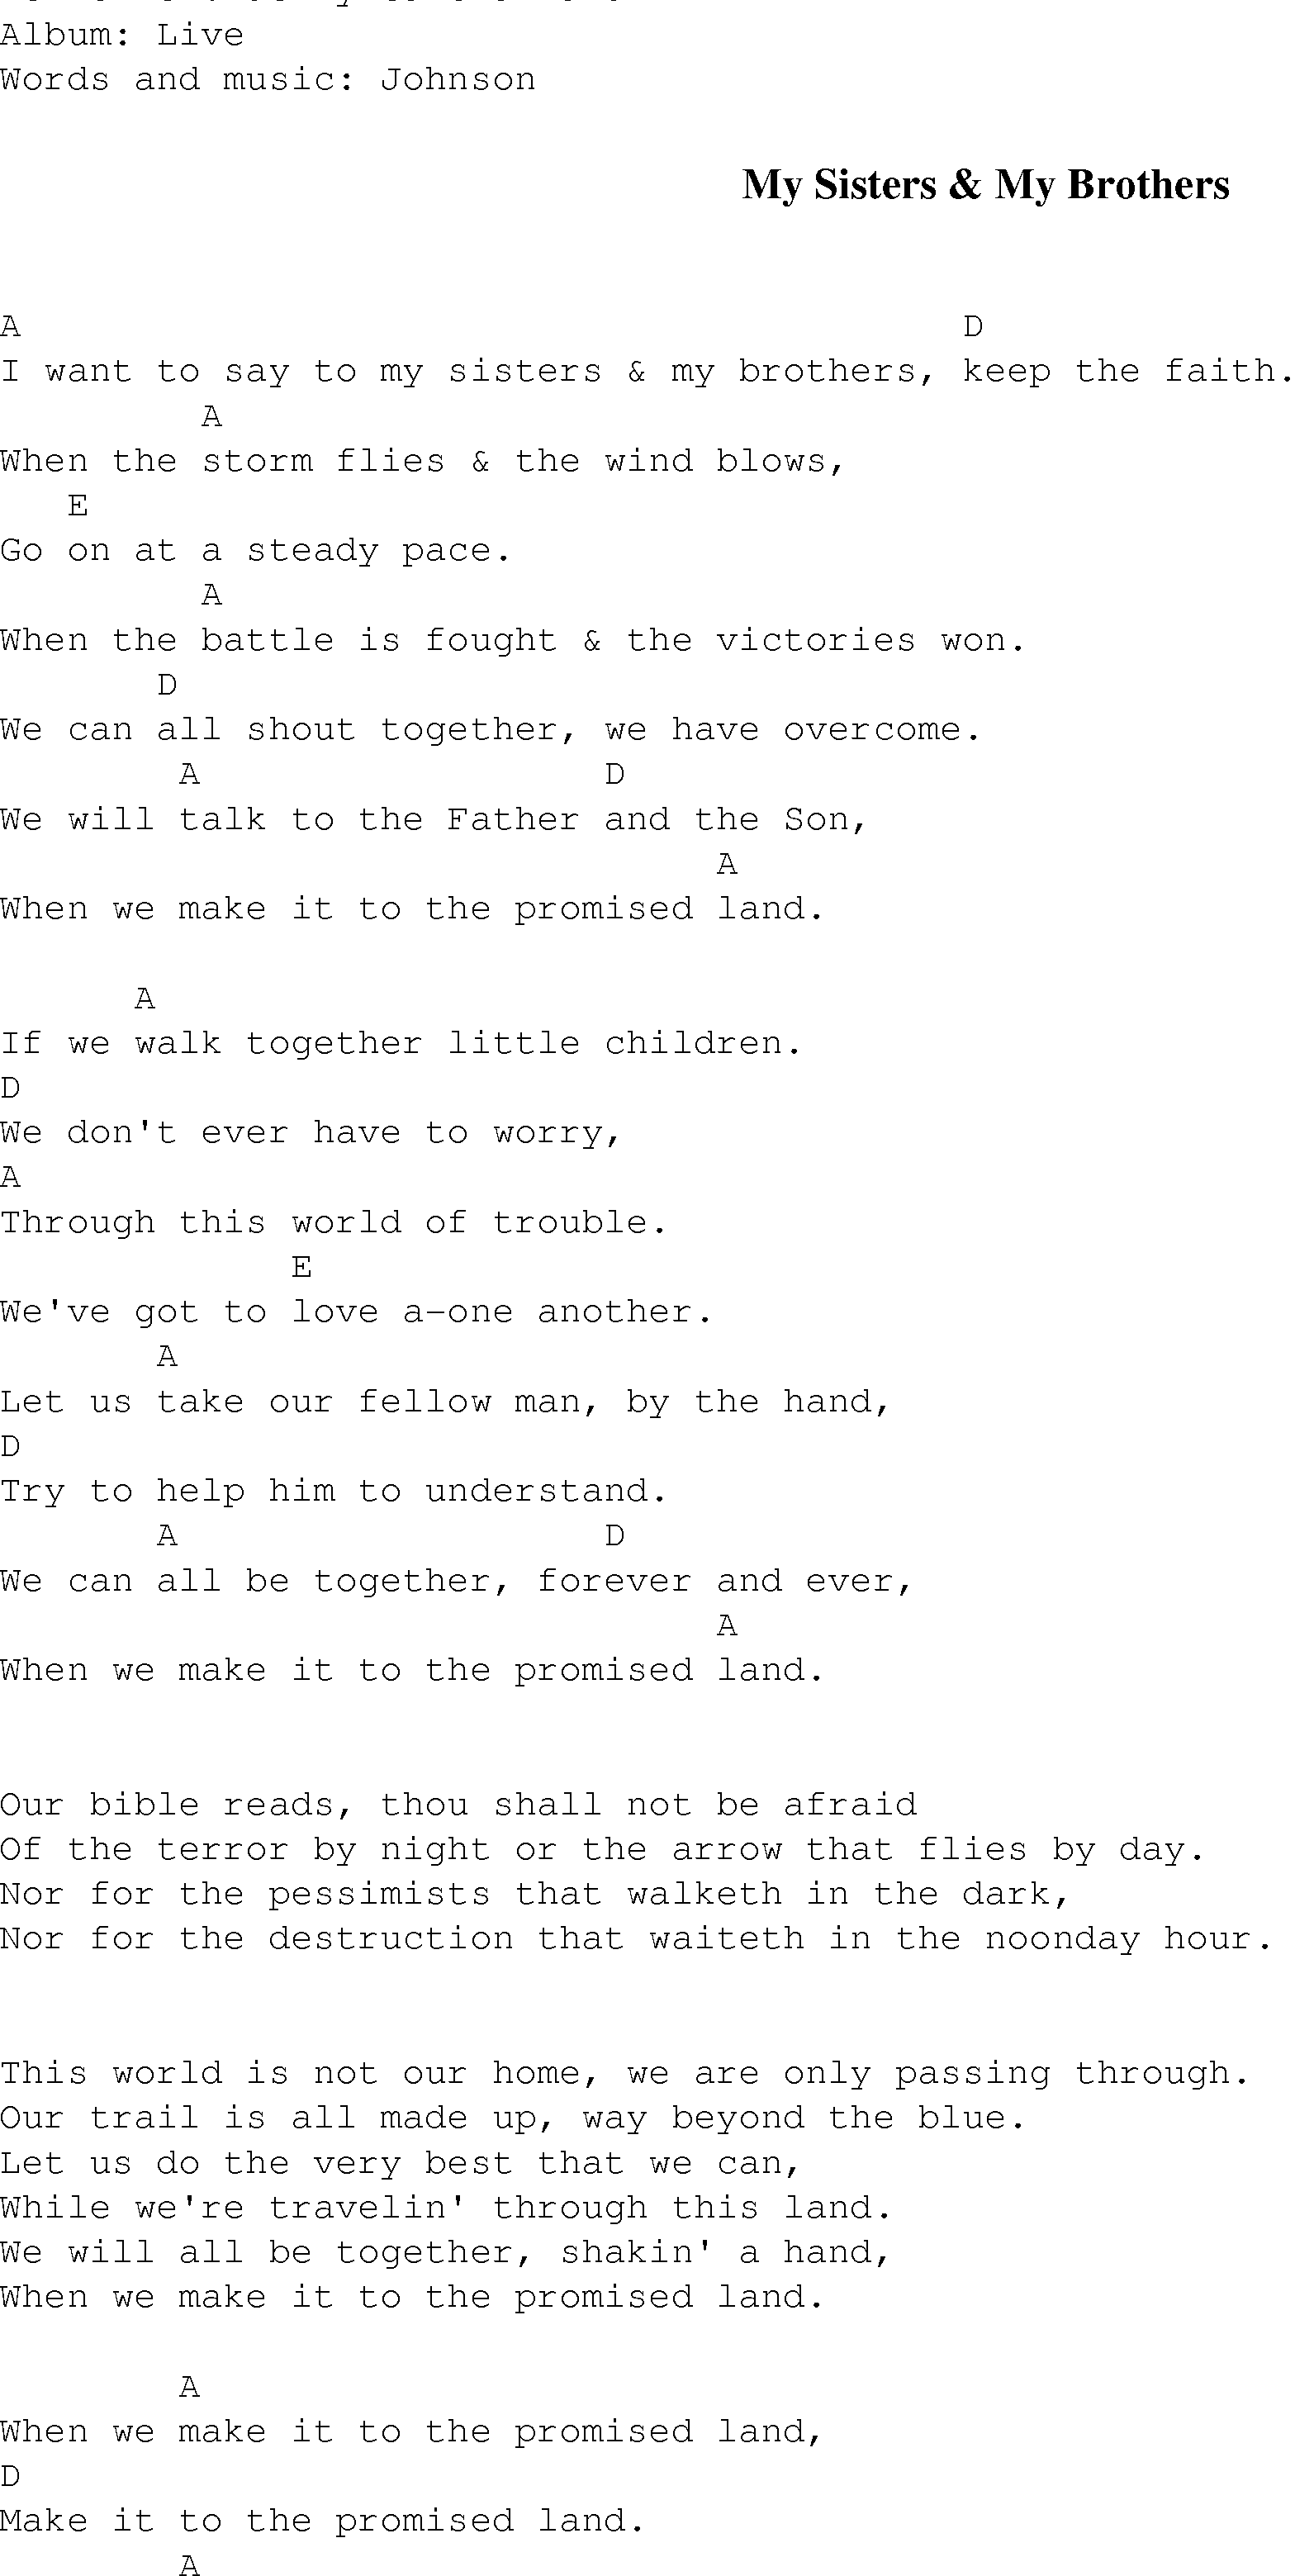 My Sisters & My Brothers - Christian Gospel Song Lyrics and Chords